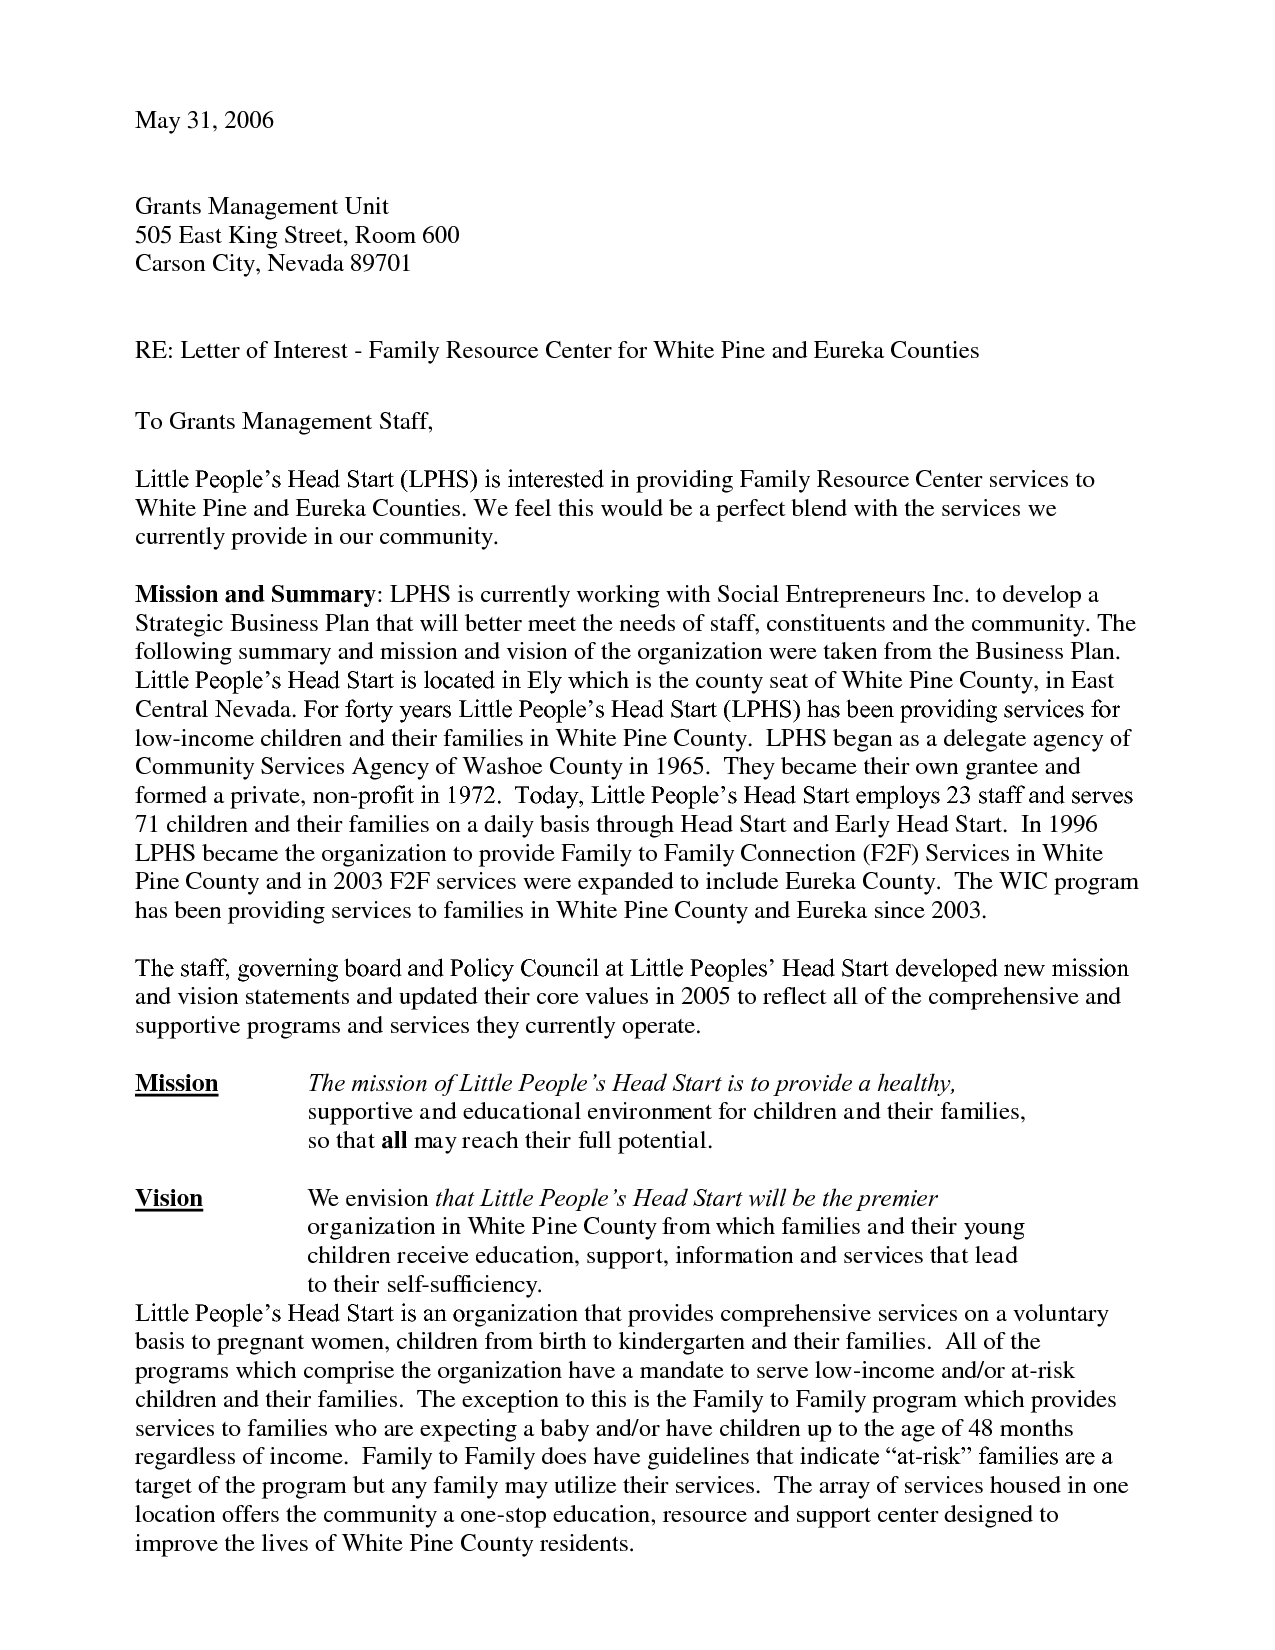 Example of business letter of interest cover letter for Express of interest cover letter